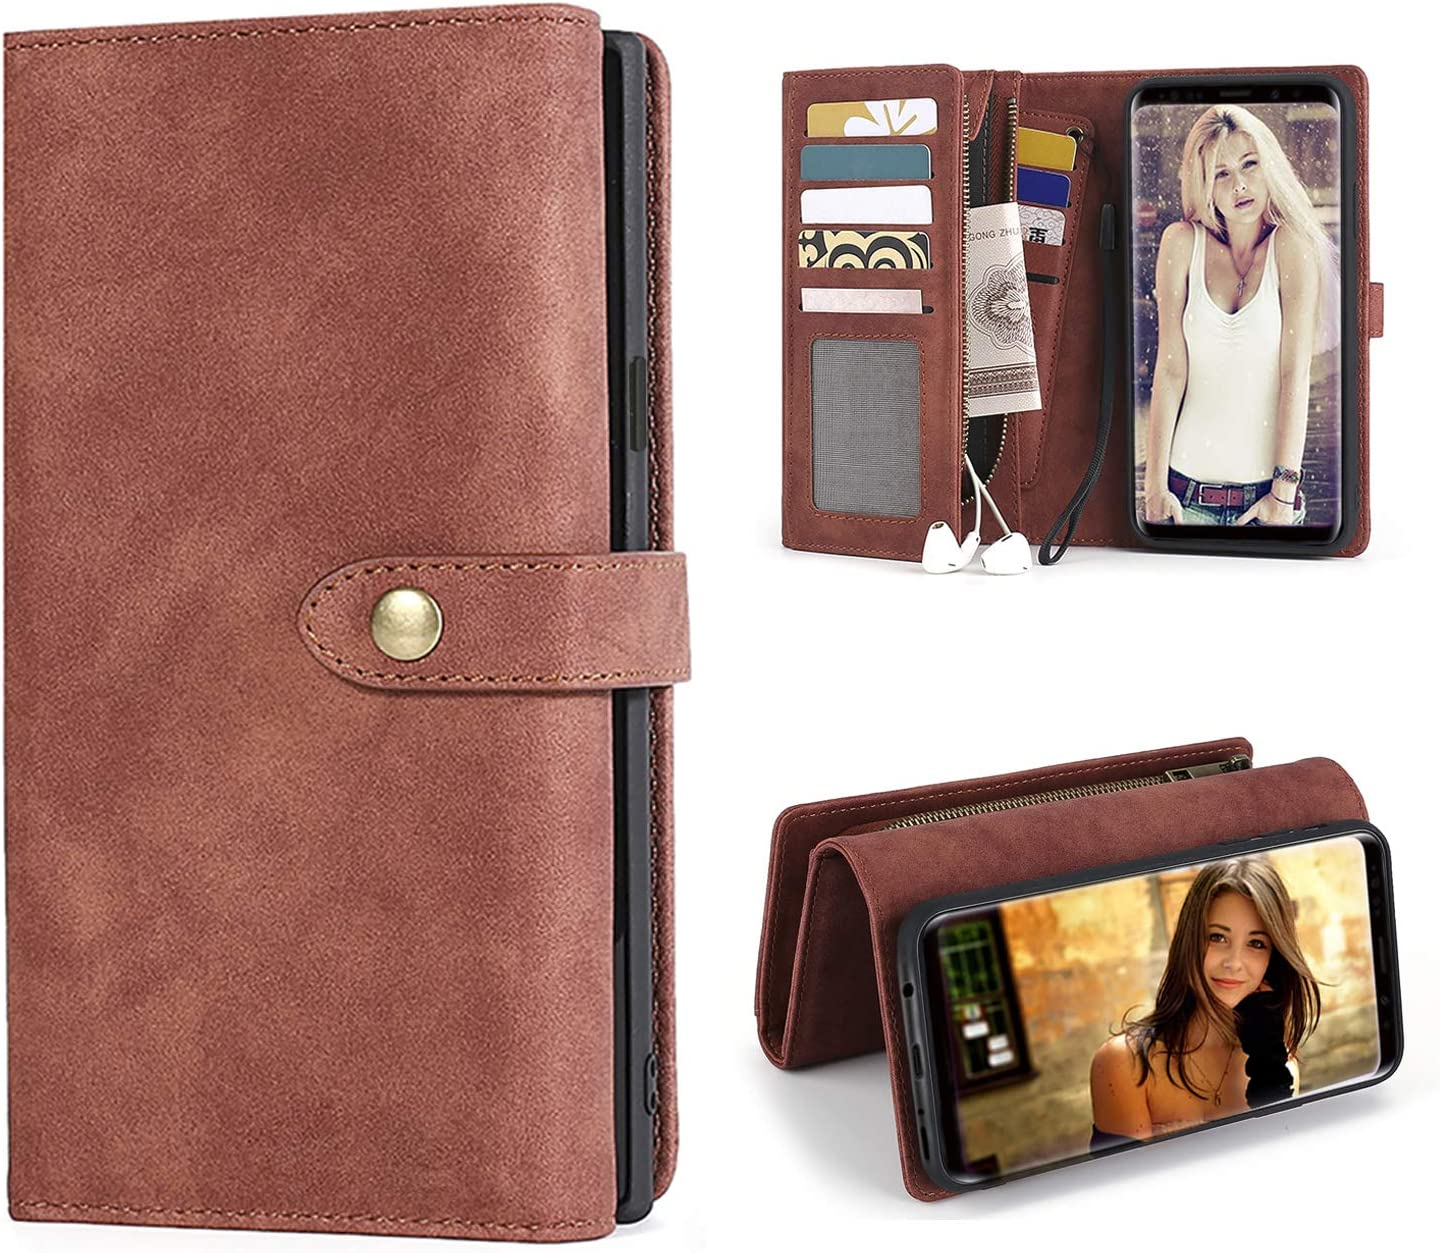 MODOS LOGICOS Samsung Galaxy S9 Plus Case, [Detachable Wallet Folio][2 in 1][Zipper Cash Storage][Up to 9 Card Slots 2 Photo Windows] PU Leather Purse with Removable Inner Magnetic TPU Case - Coffee